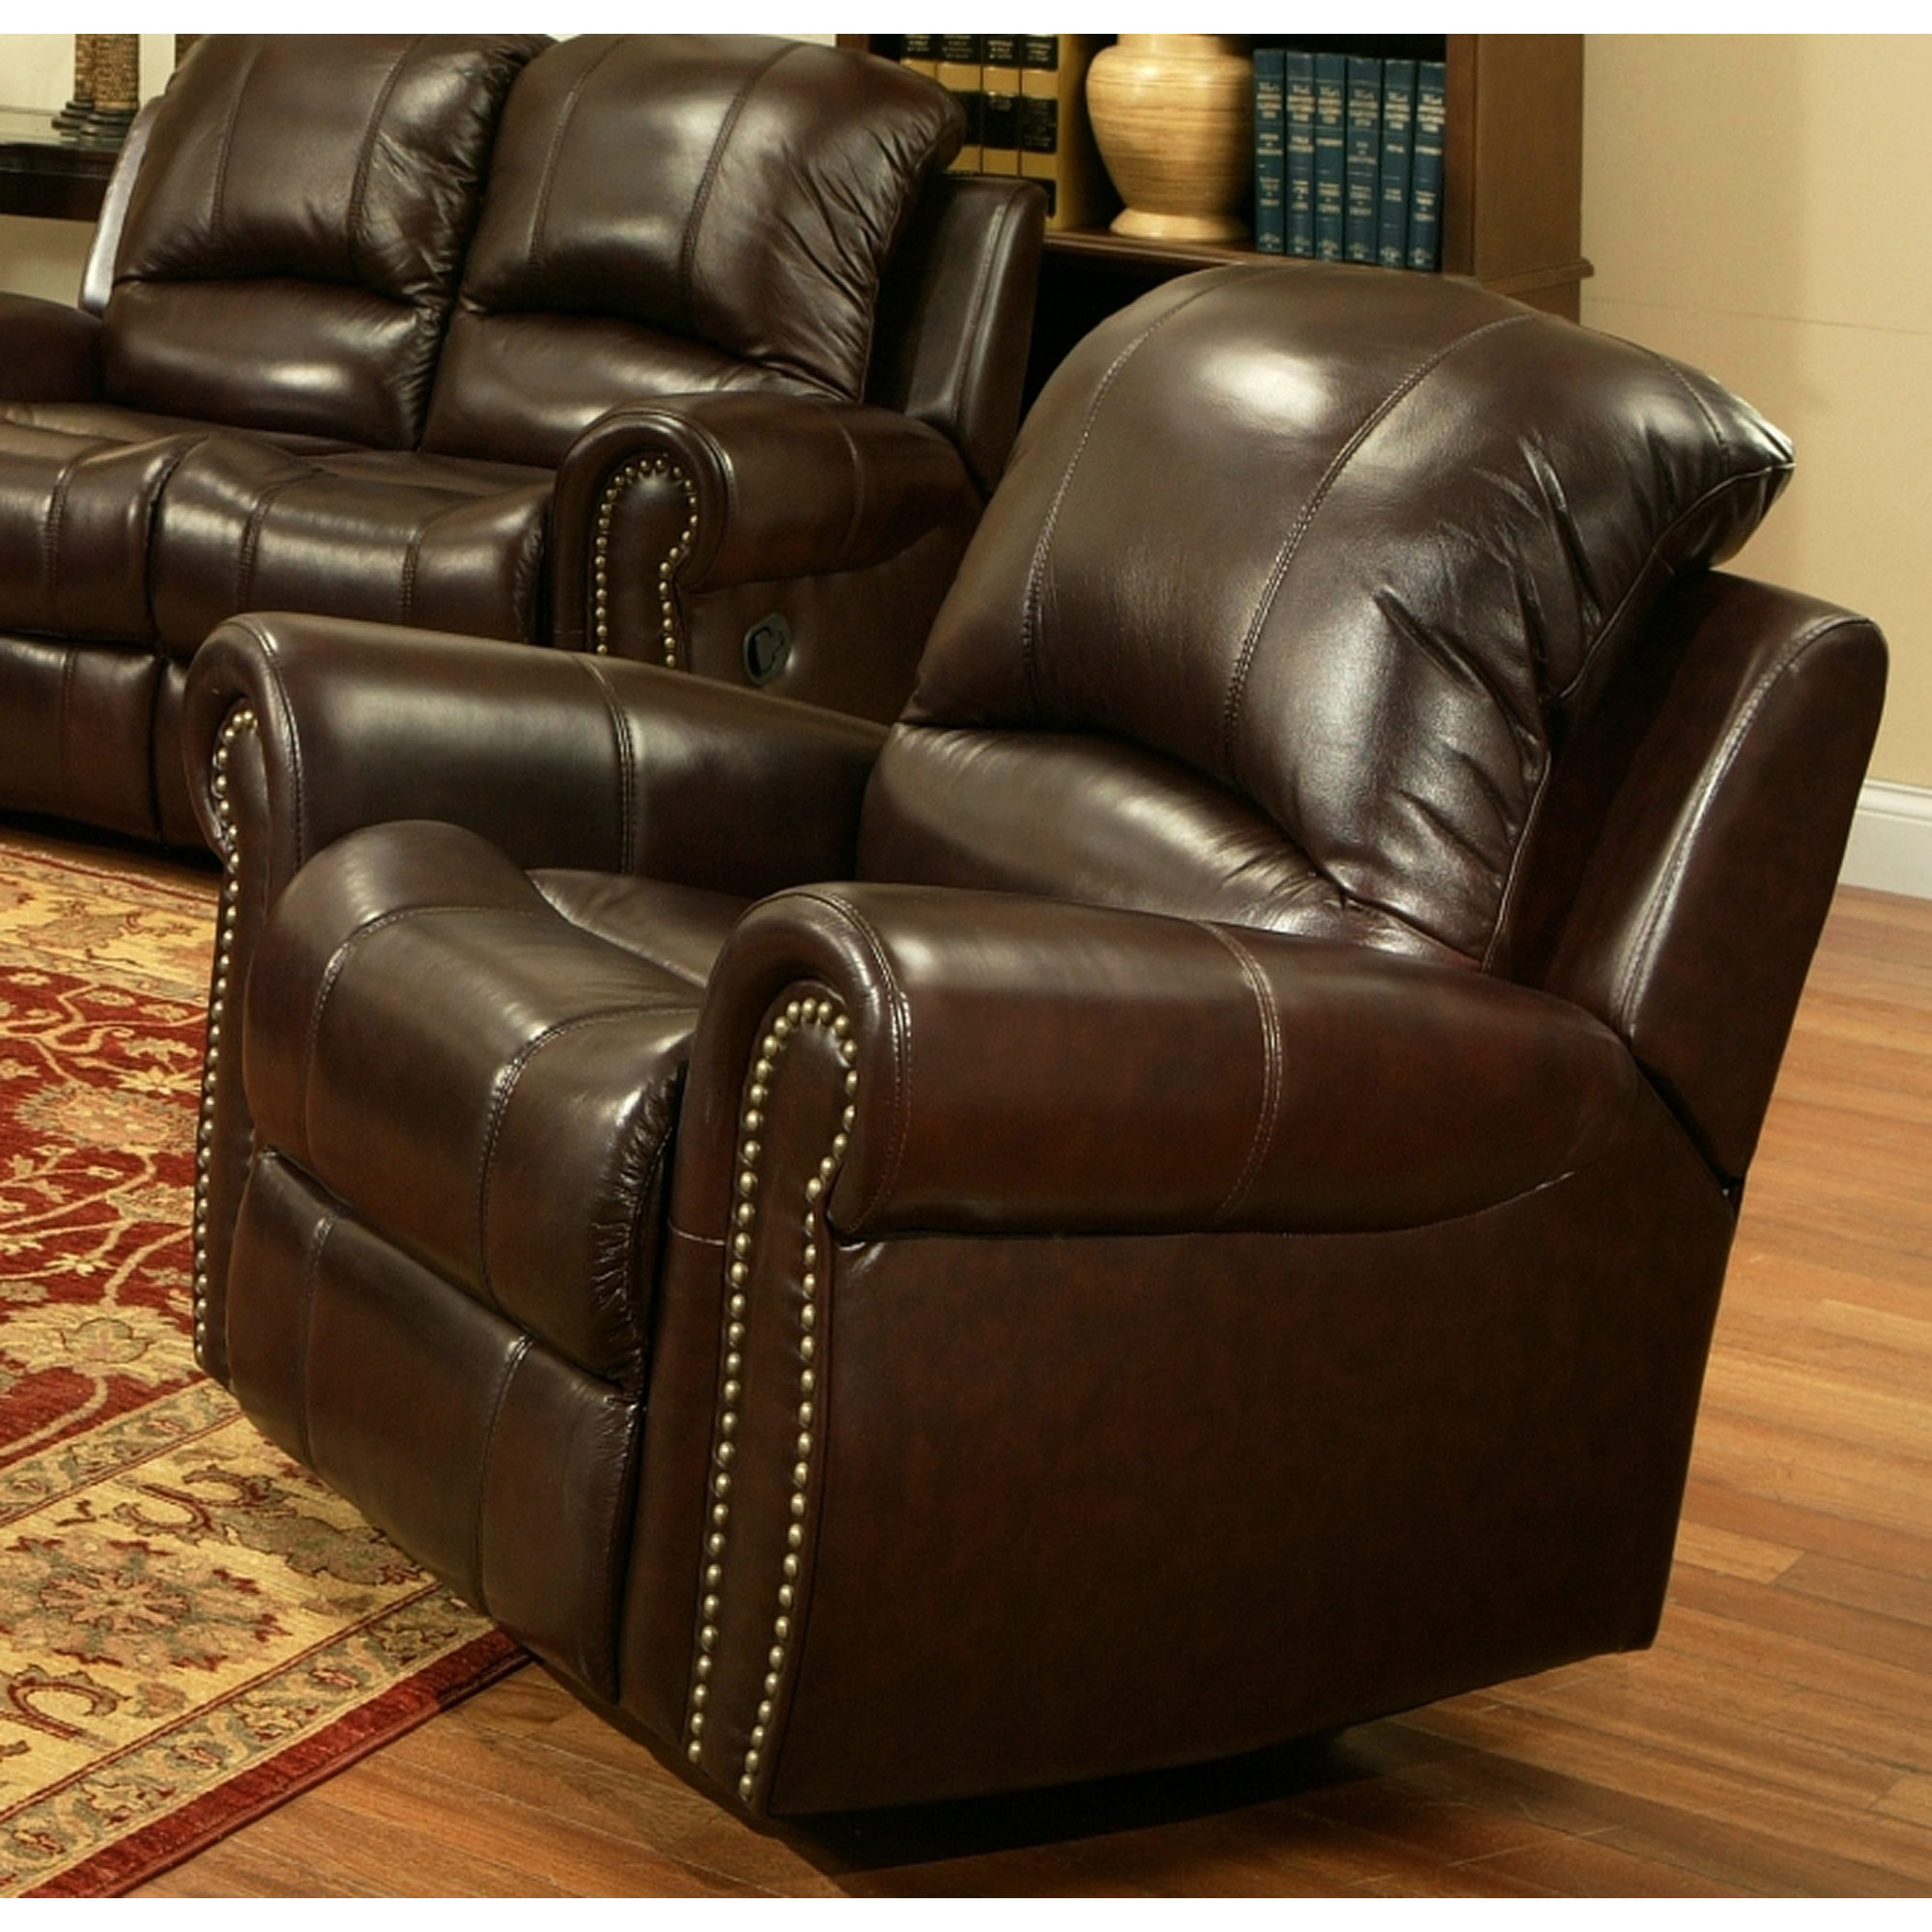 Two Recliners In Hardwood Floor Room Near Decorative Rug & Top Rated Recliners | HomesFeed islam-shia.org